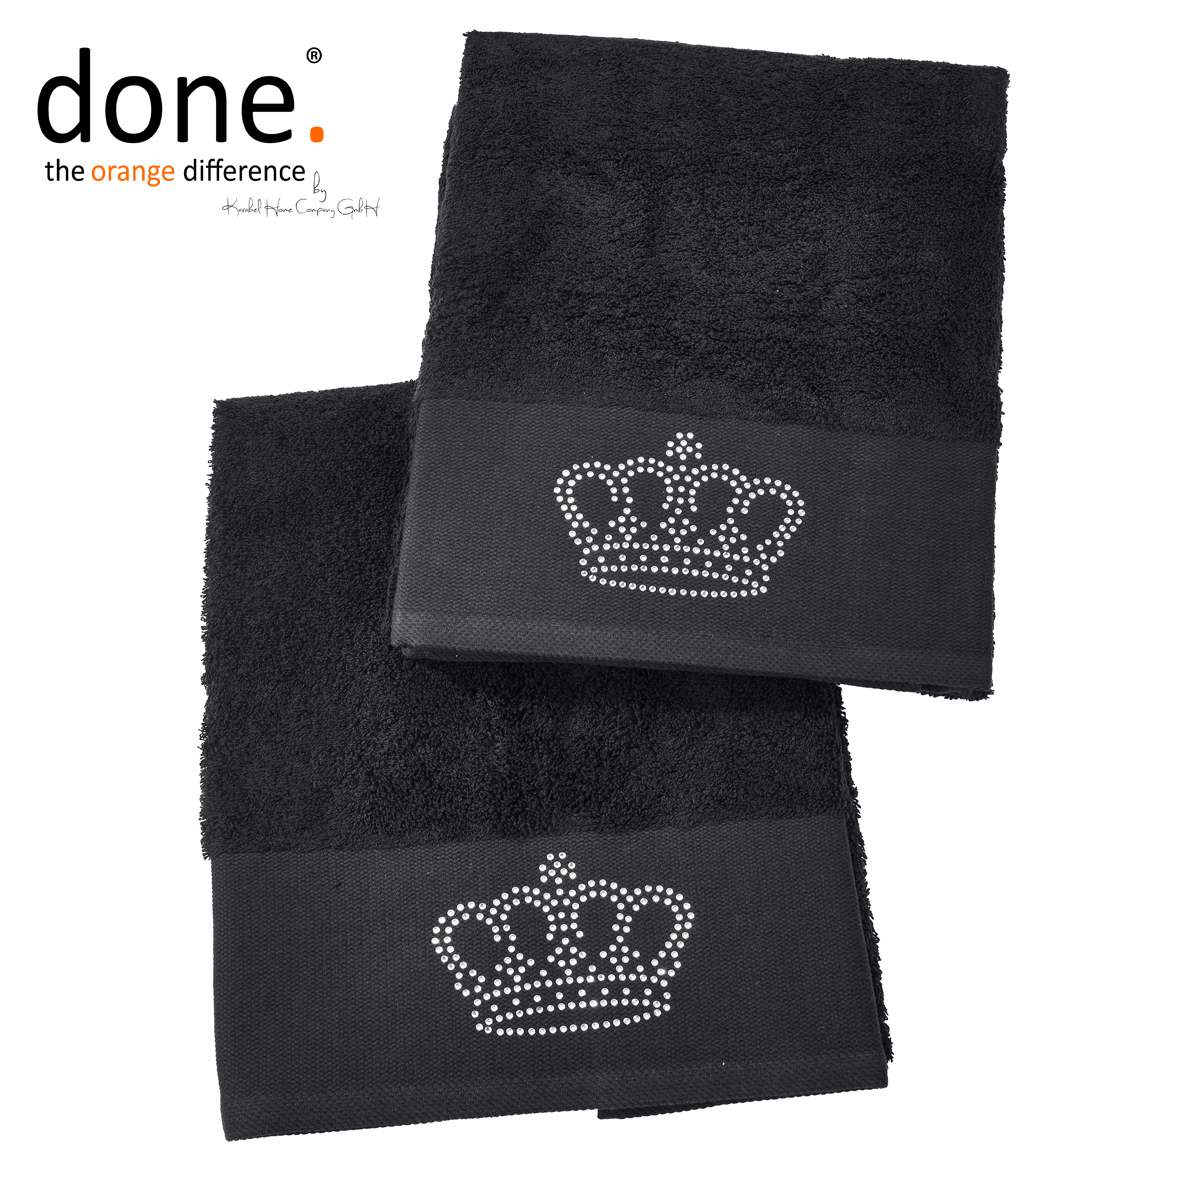 done black line stone crown handtuch set 2 tlg schwarz. Black Bedroom Furniture Sets. Home Design Ideas